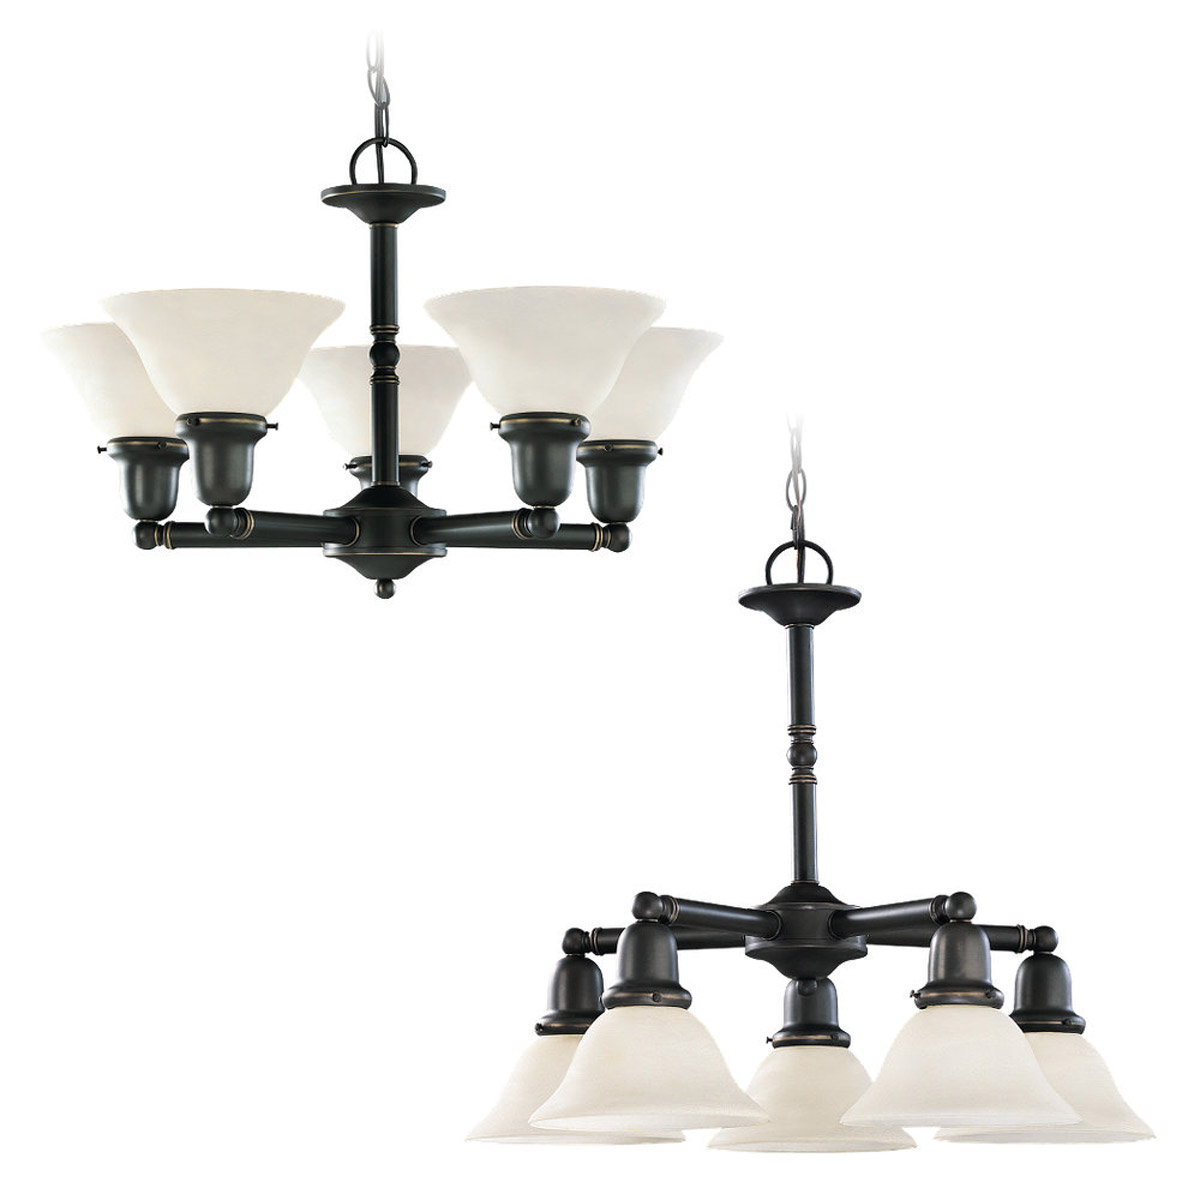 Sea Gull Lighting Sussex 5 Light Chandelier in Heirloom Bronze 39062BLE-782 photo